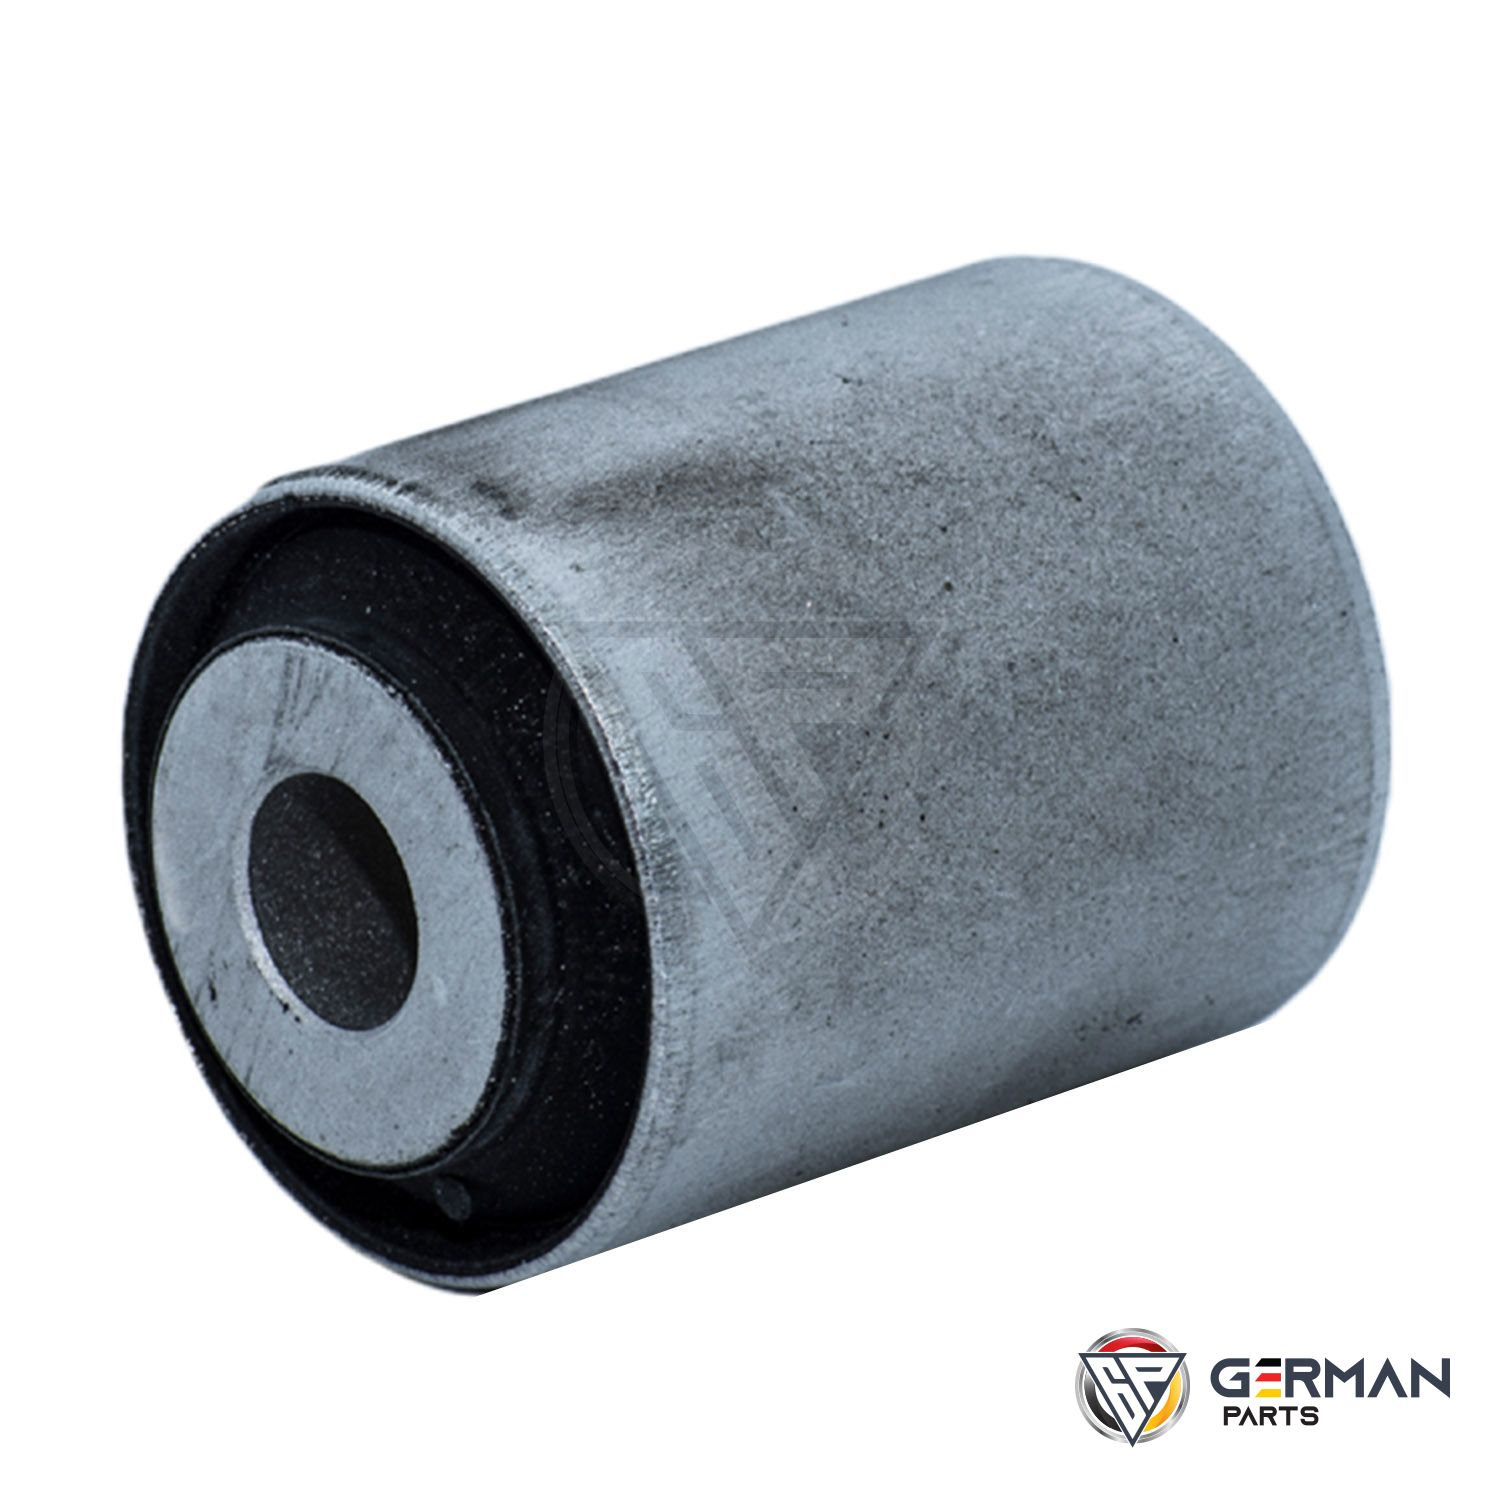 Buy Mercedes Benz Lower Arm Bush 1663330100 - German Parts